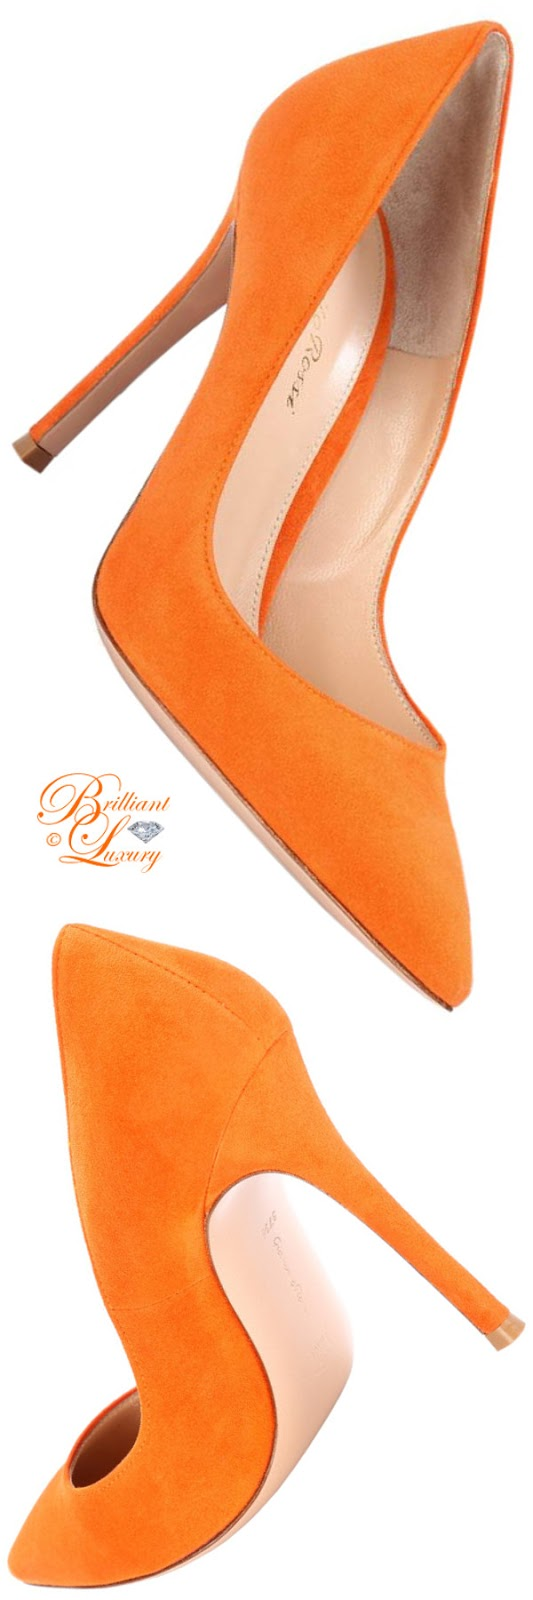 Brilliant Luxury ♦ Gianvito Rossi Gianvito pumps #orange